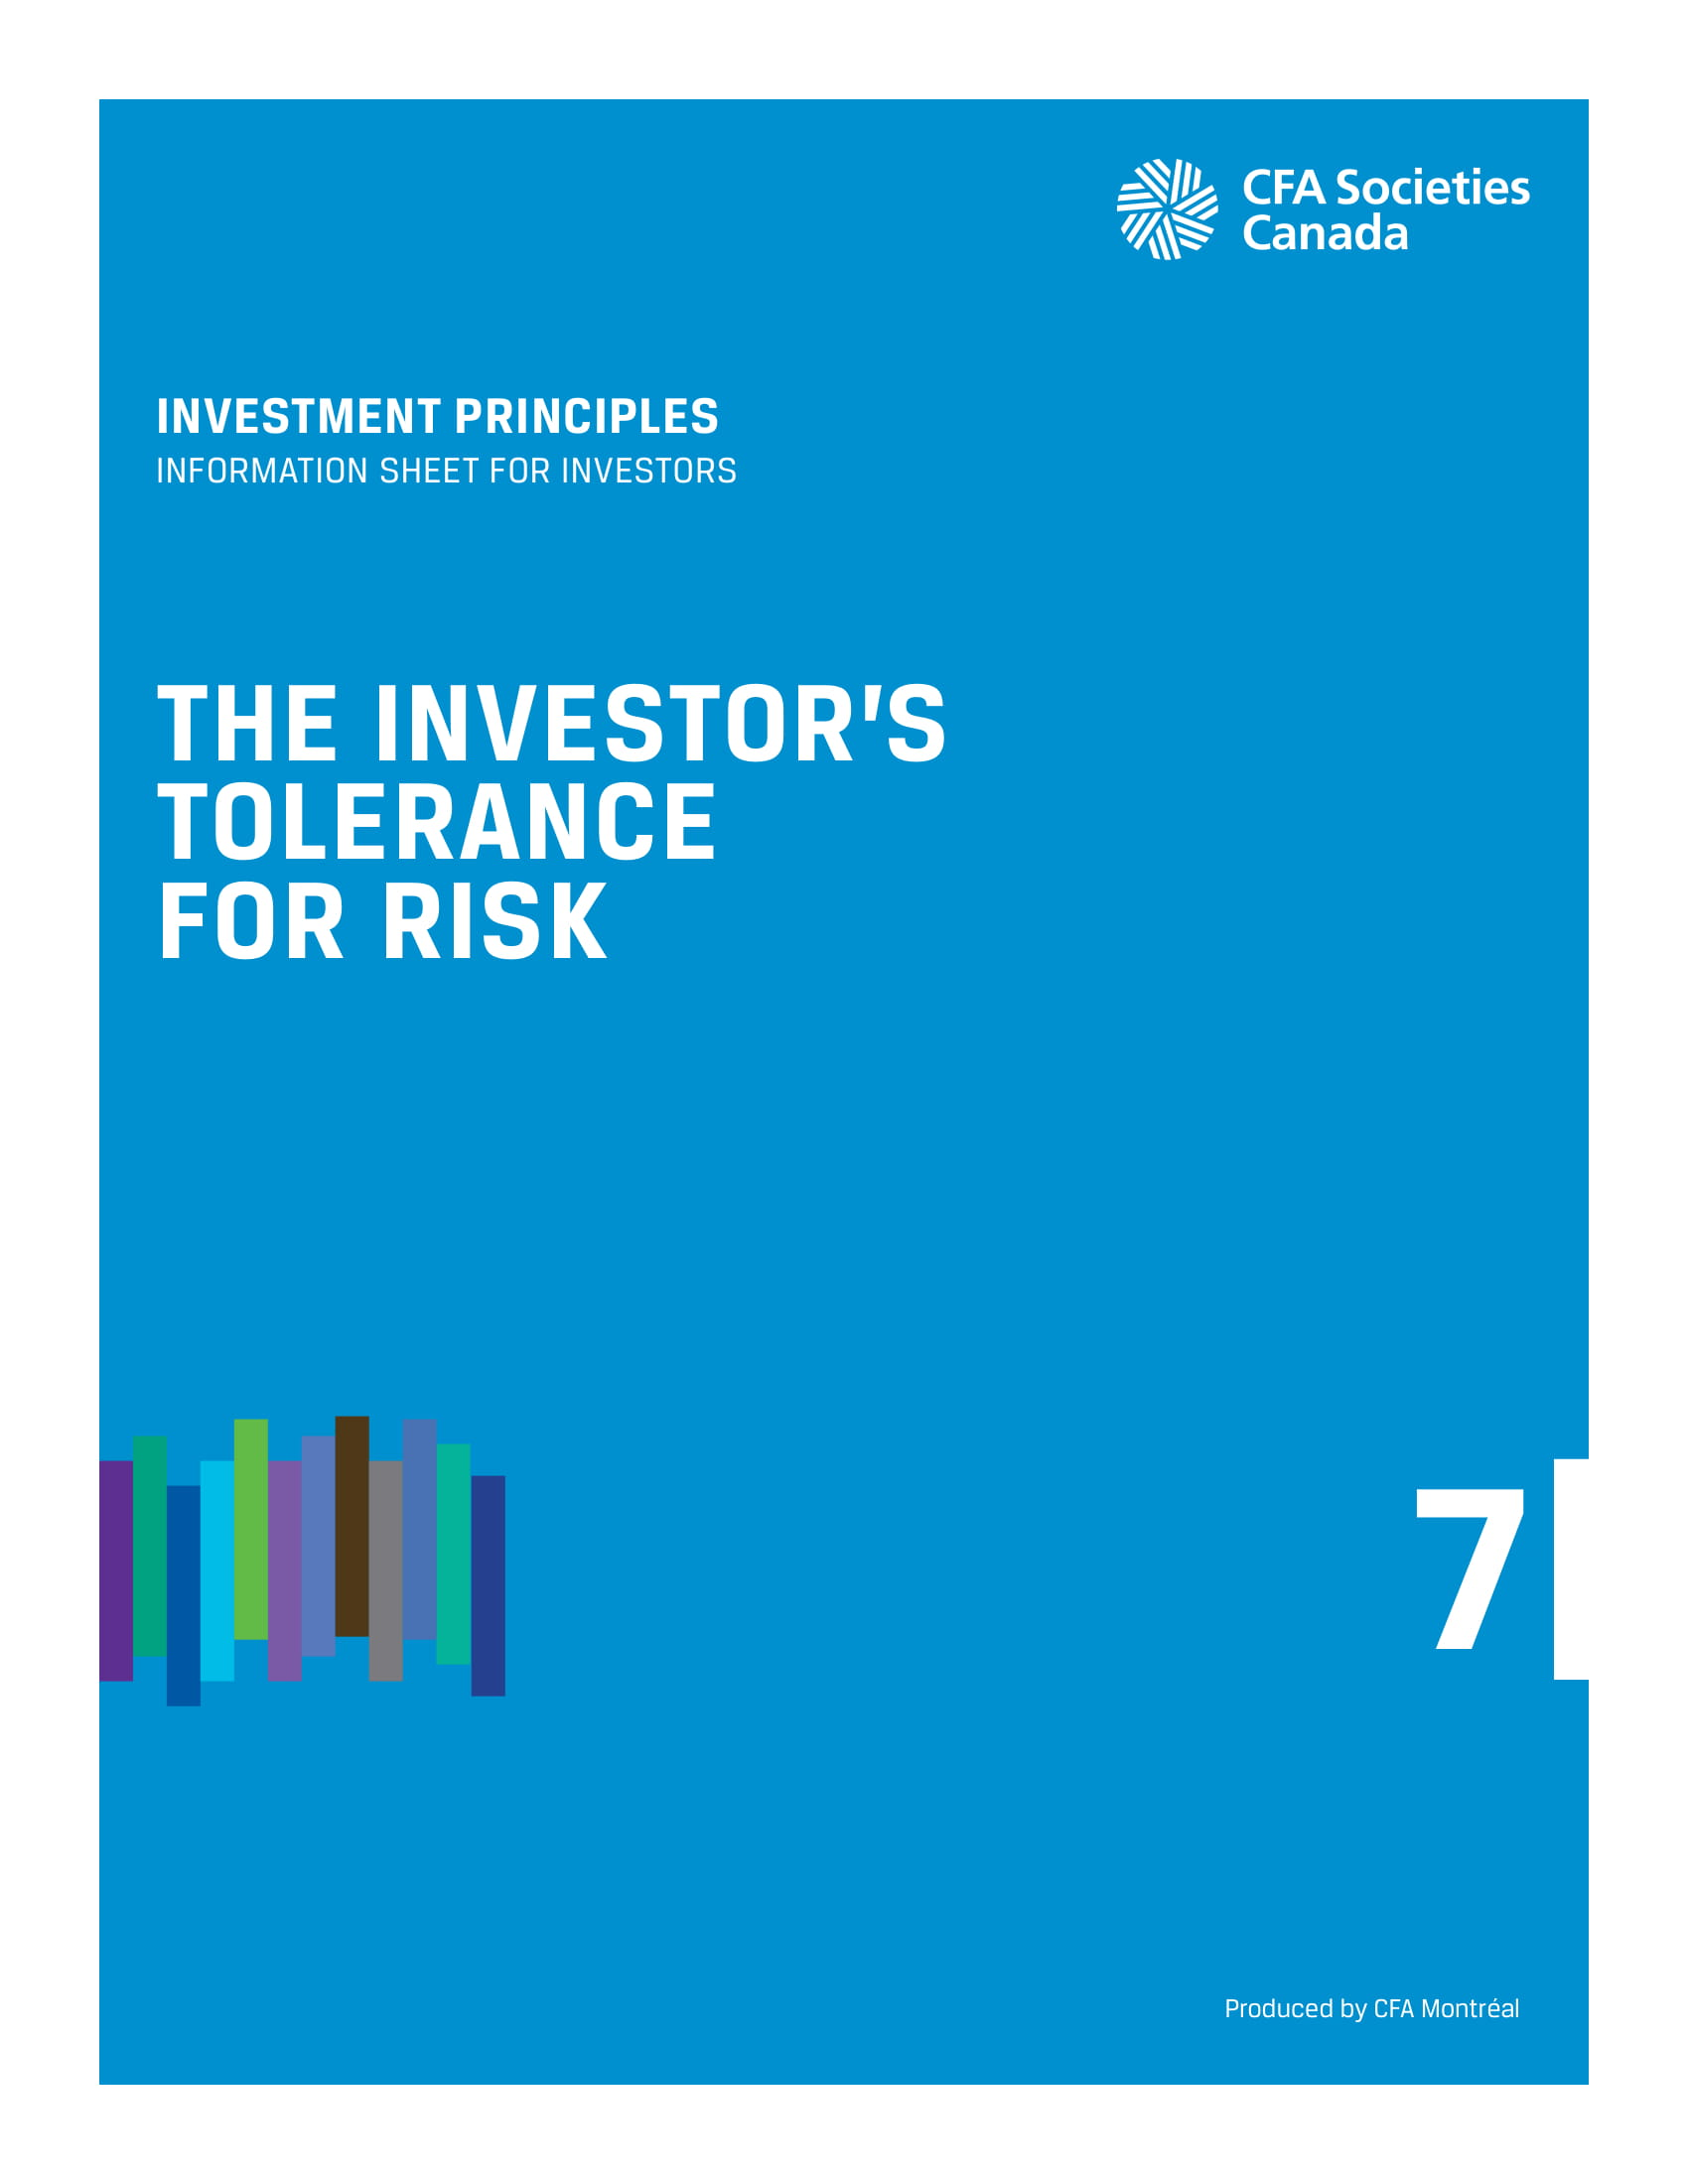 7. Investors - The Investor's Tolerance for Risk_p1-1-1.jpg